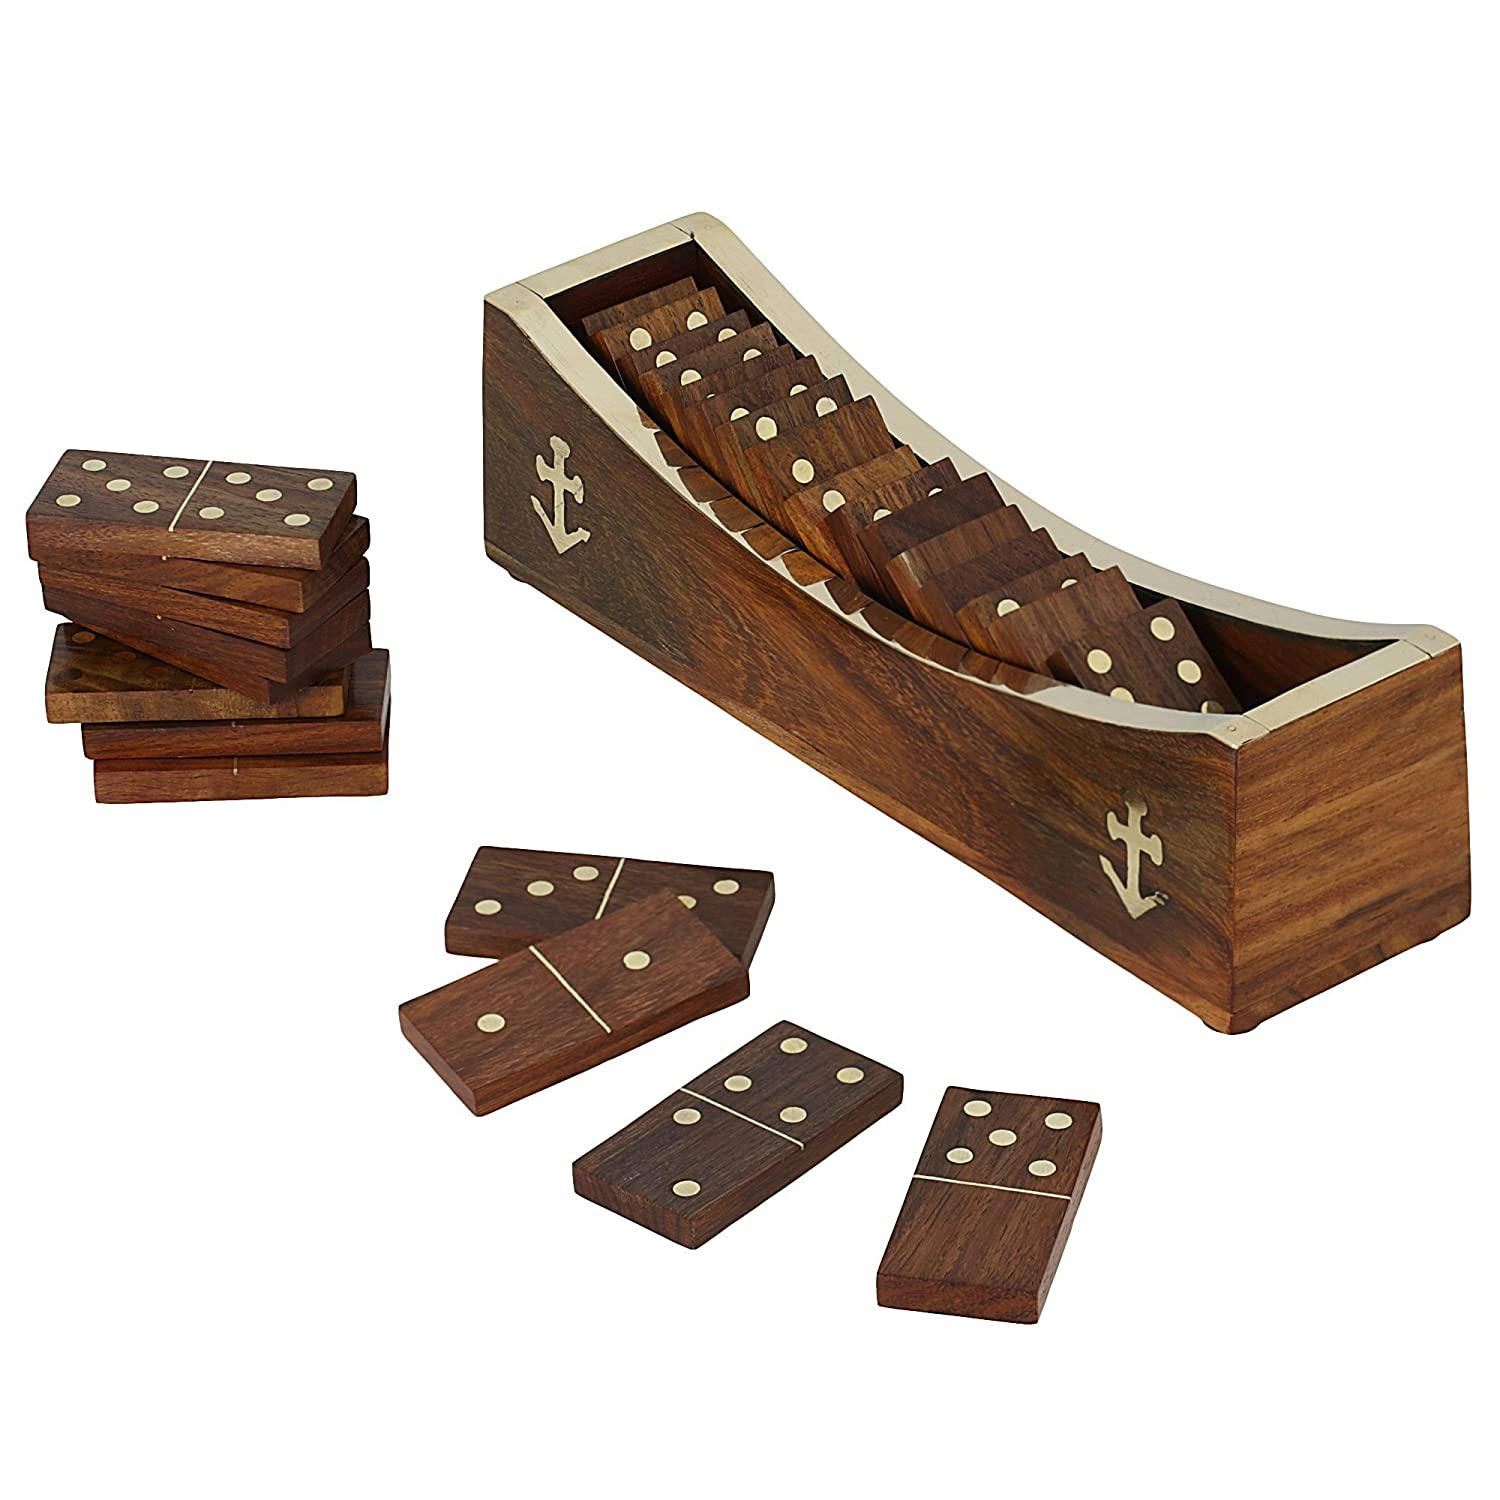 Amazon.com: Wooden Domino Game, Open Boat Tray and Pieces ...